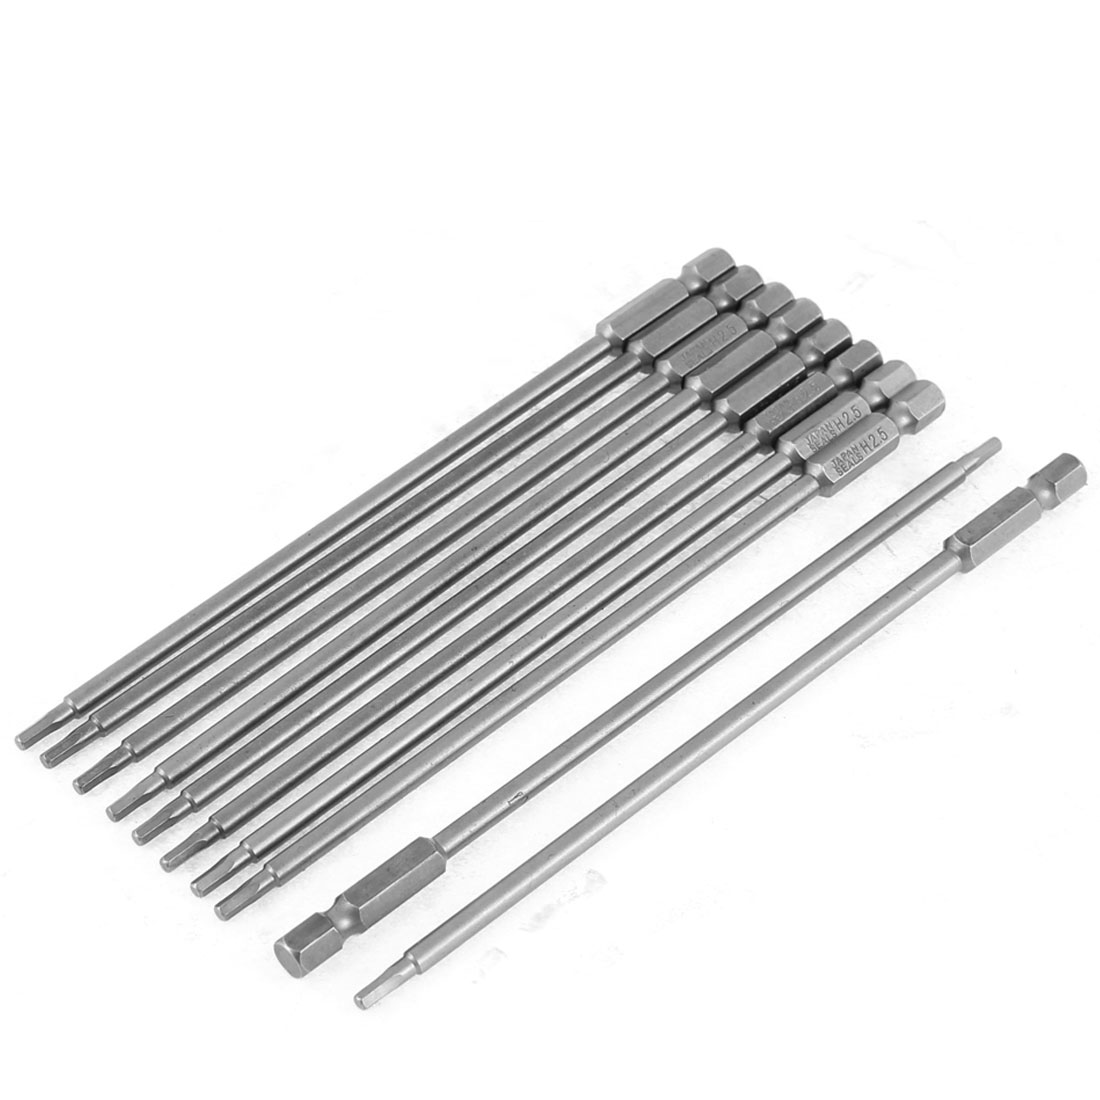 "10pcs 1/4"" Hex Shank 150mm Long 2.5mm Tip Hexagon Screwdriver Bits Hand Tool"